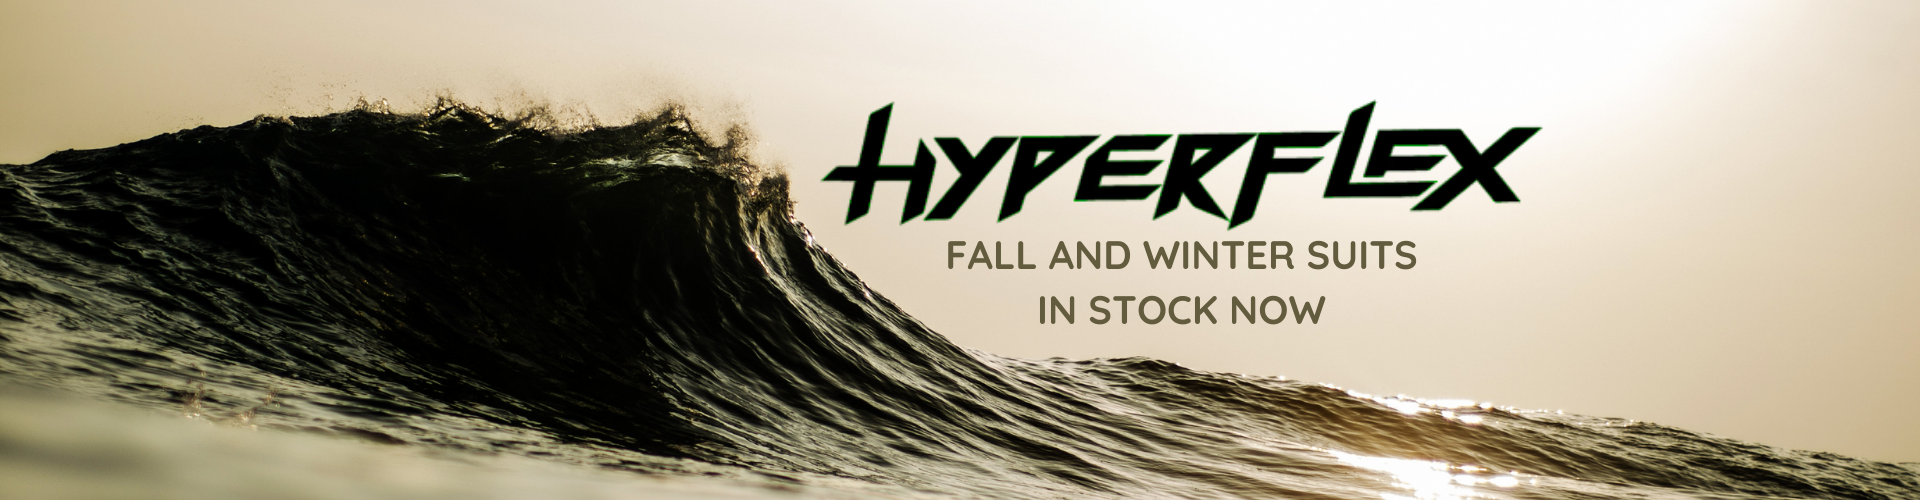 Hyperflex Suits